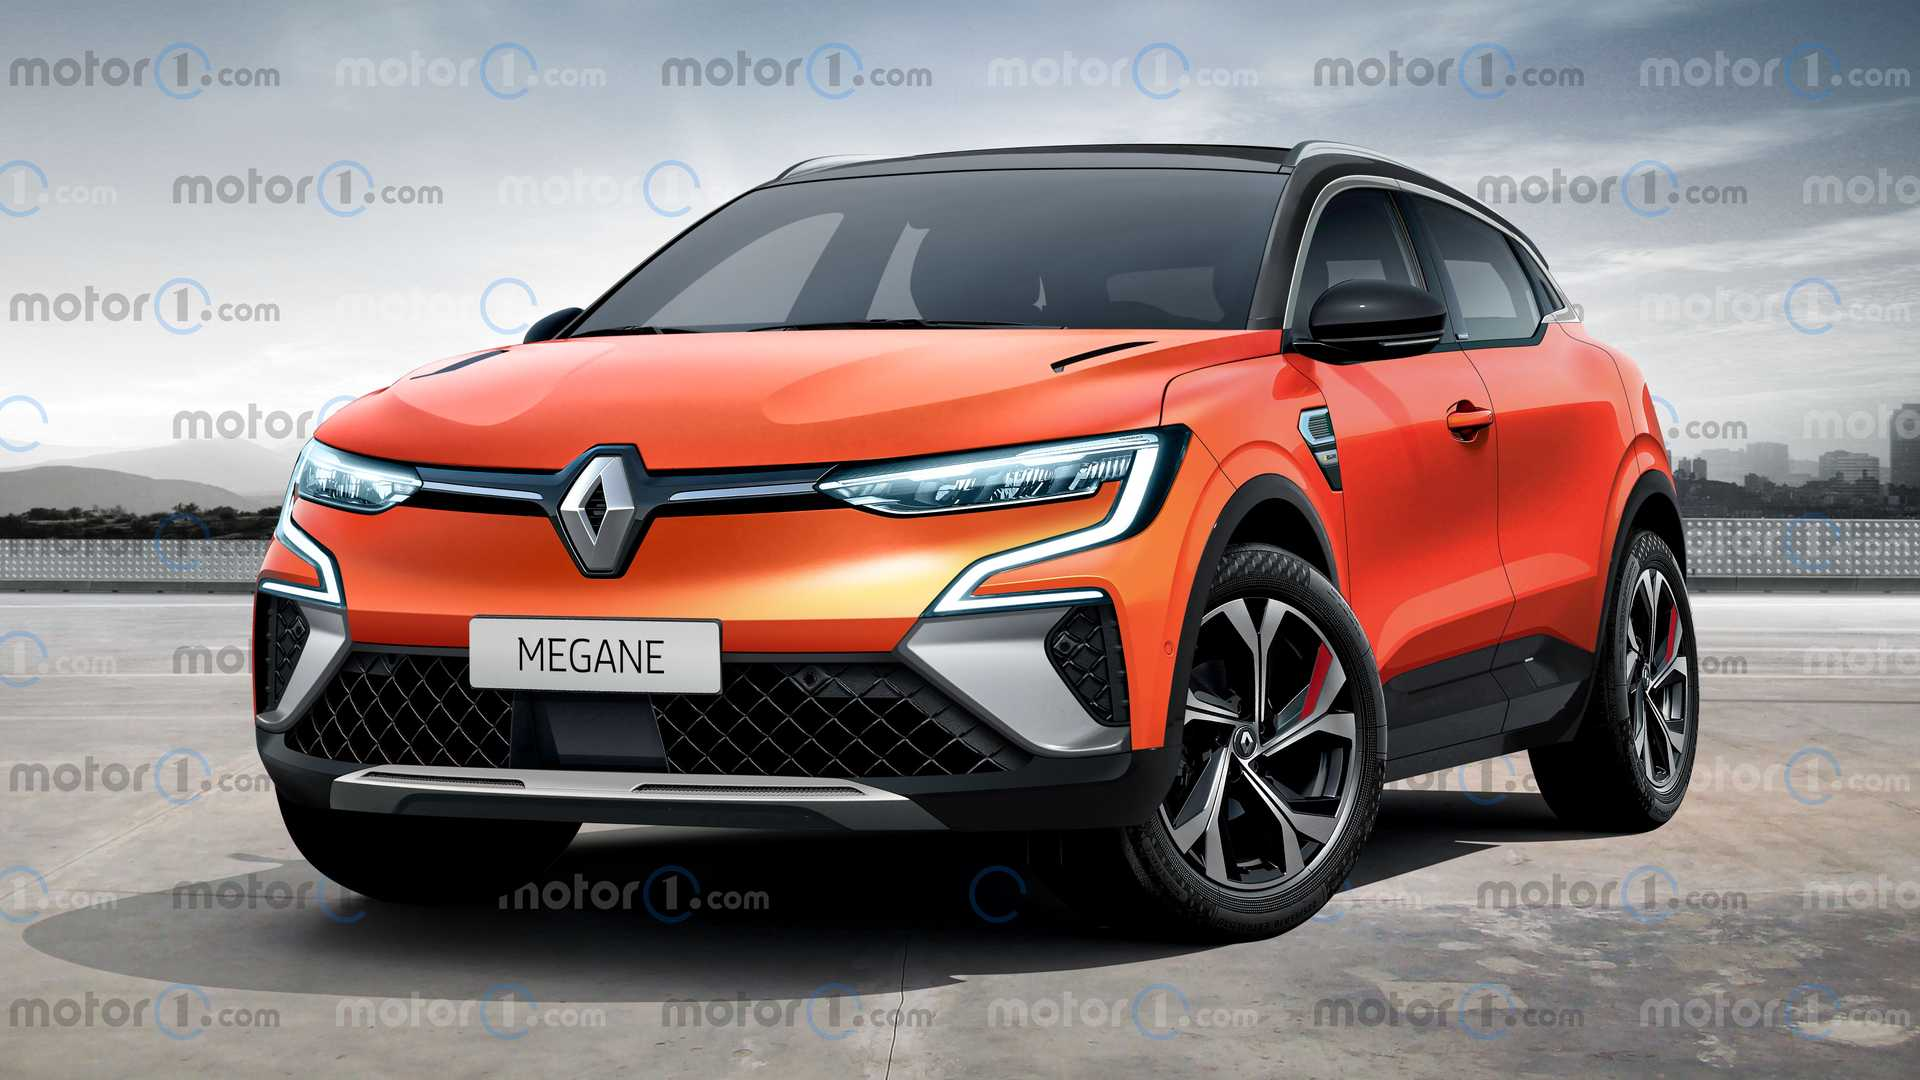 Renault Megane eVision Morphs Into Production Model In New Rendering